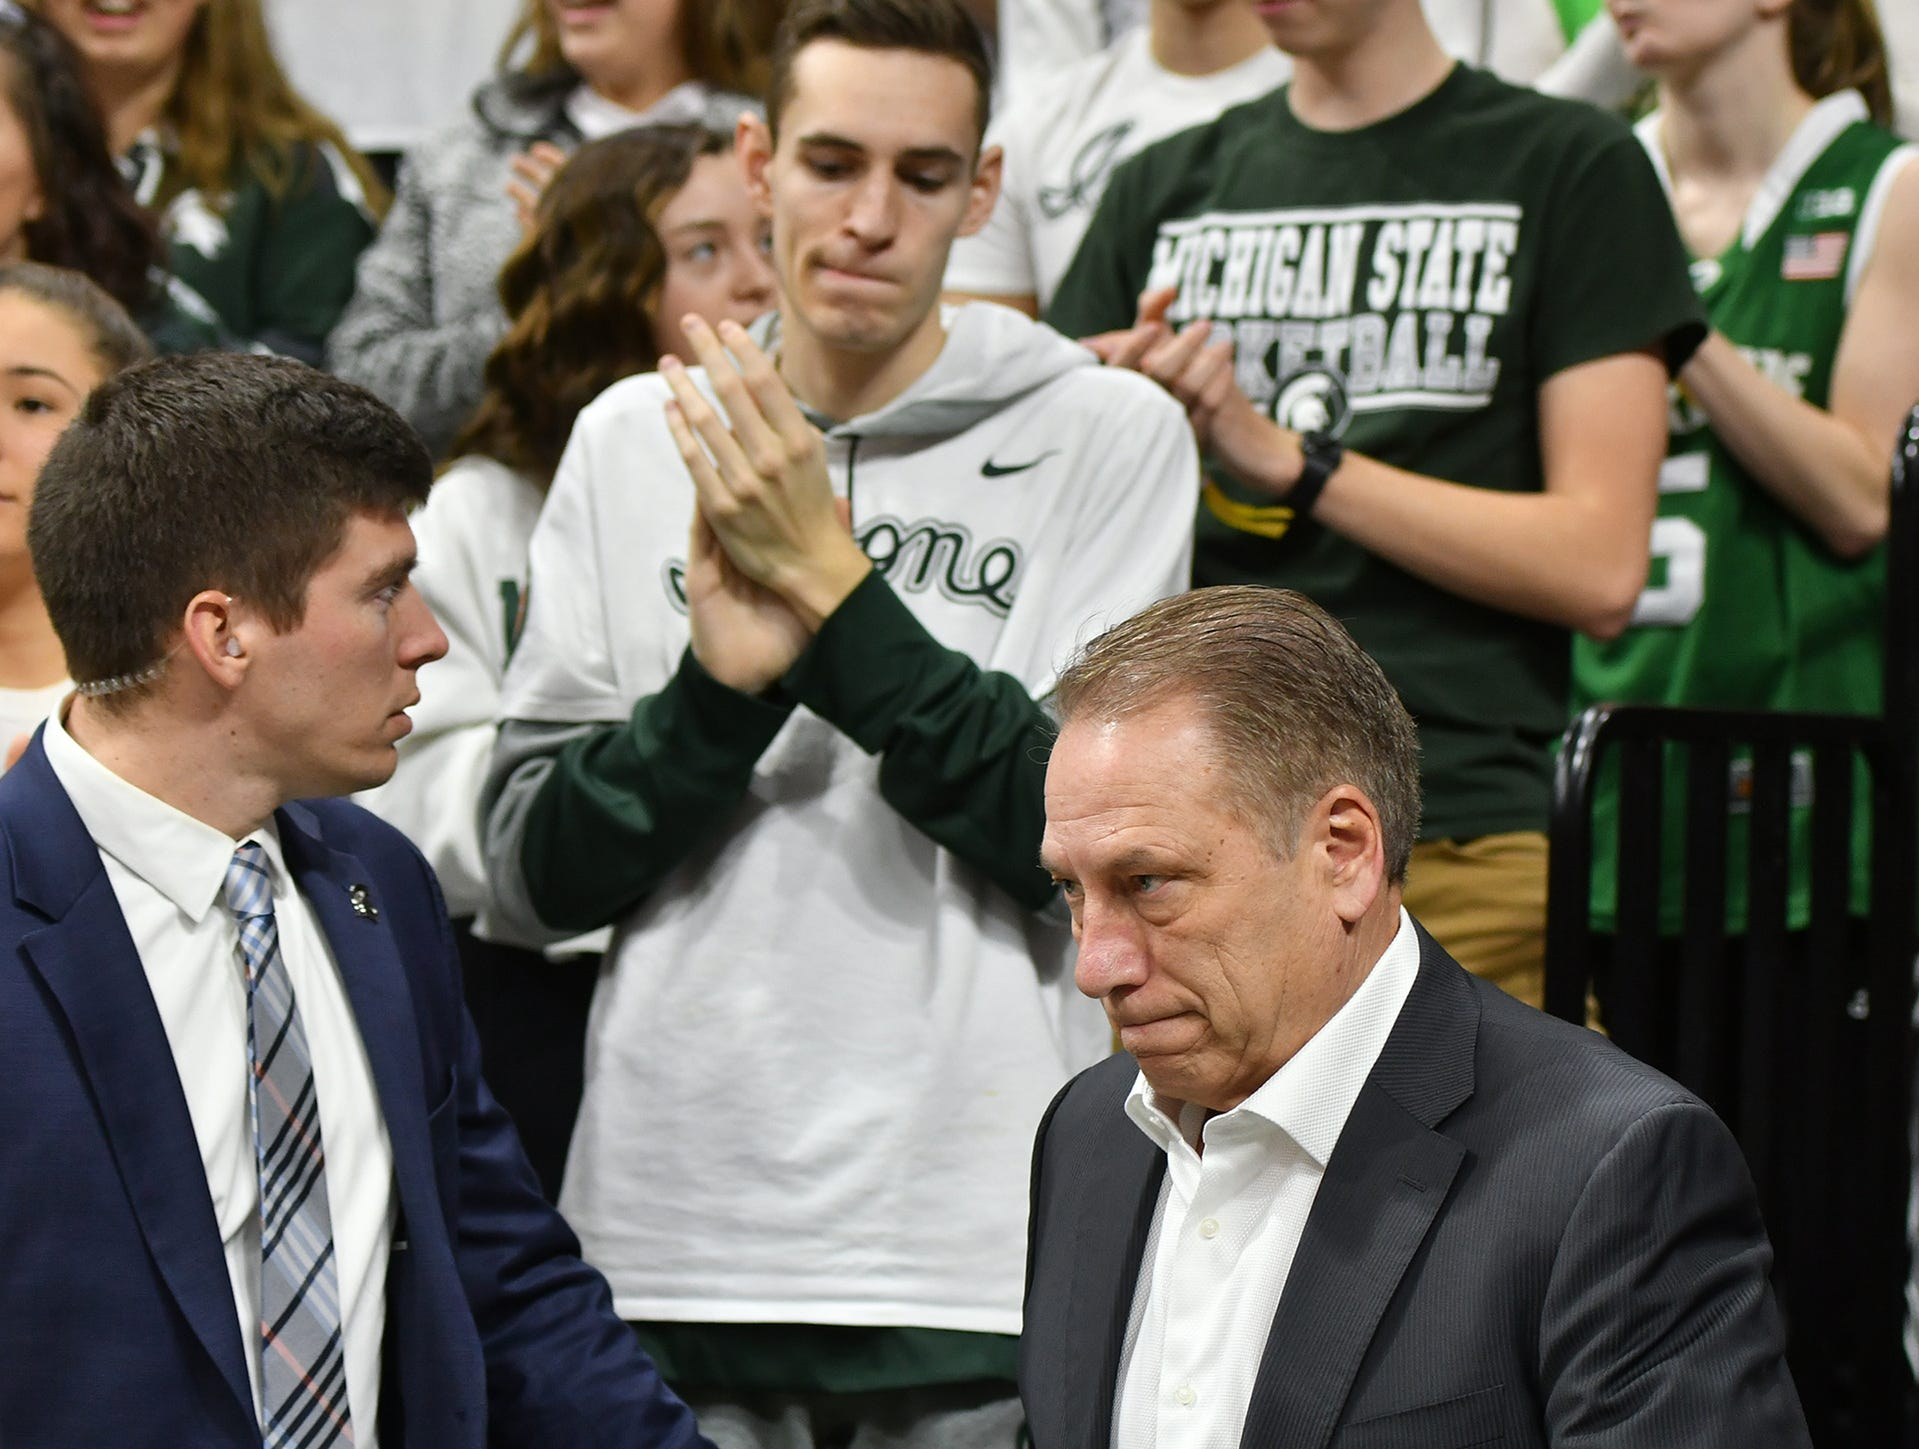 MSU Head Basketball Coach Tom Izzo heads on to the floor to meet Minnesota Saturday, Feb. 9, 2019. MSU won 79-55.